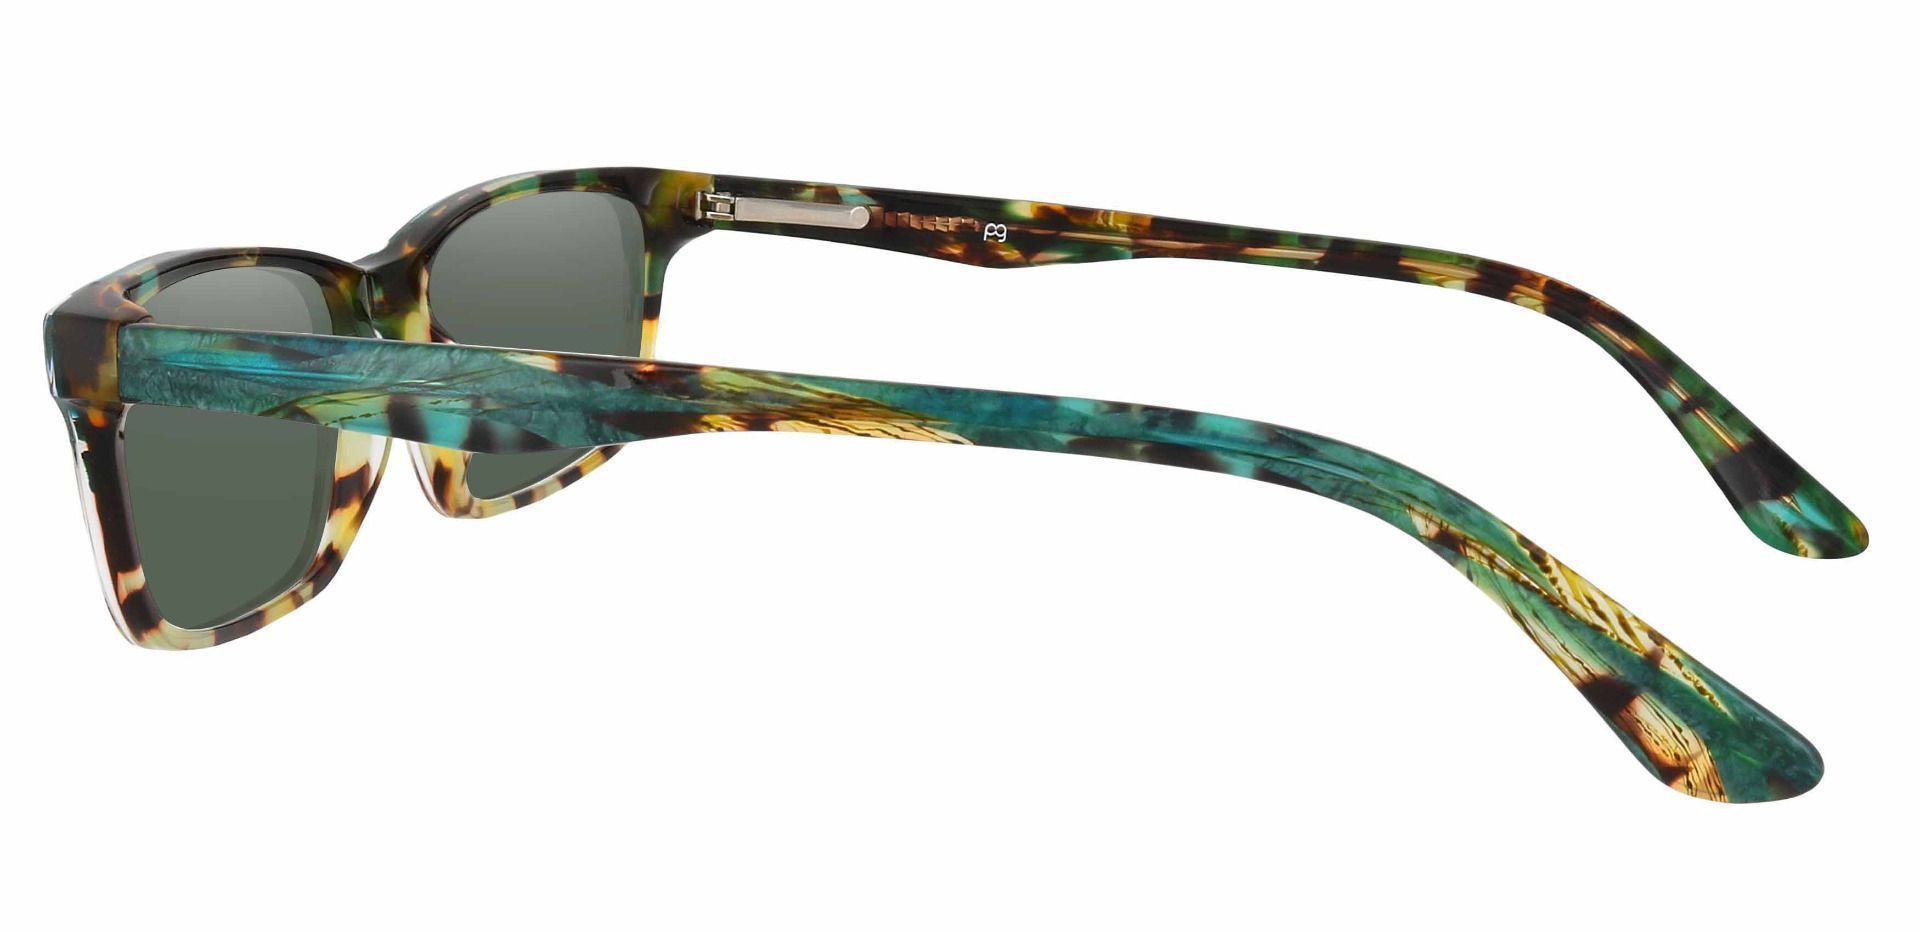 Hendrix Rectangle Non-Rx Sunglasses - Floral Frame With Green Lenses